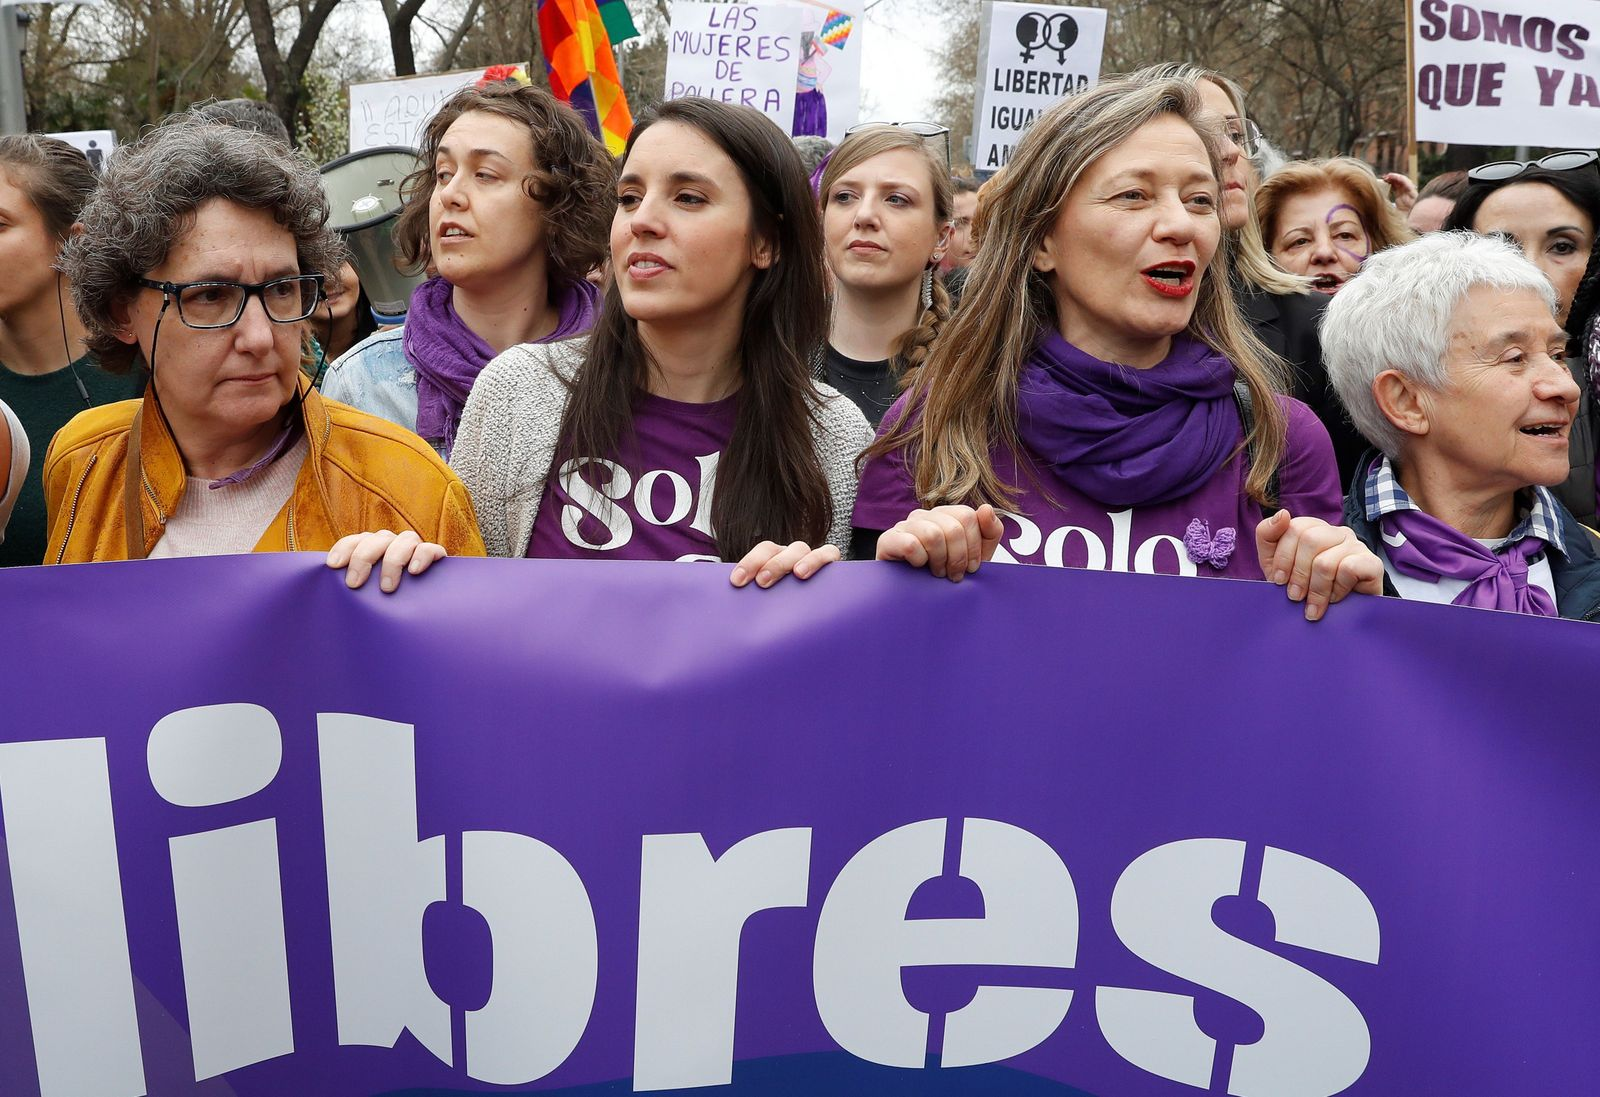 Spanish Minister for Equality tests positive for COVID-19, Madrid, Spain - 12 Mar 2020